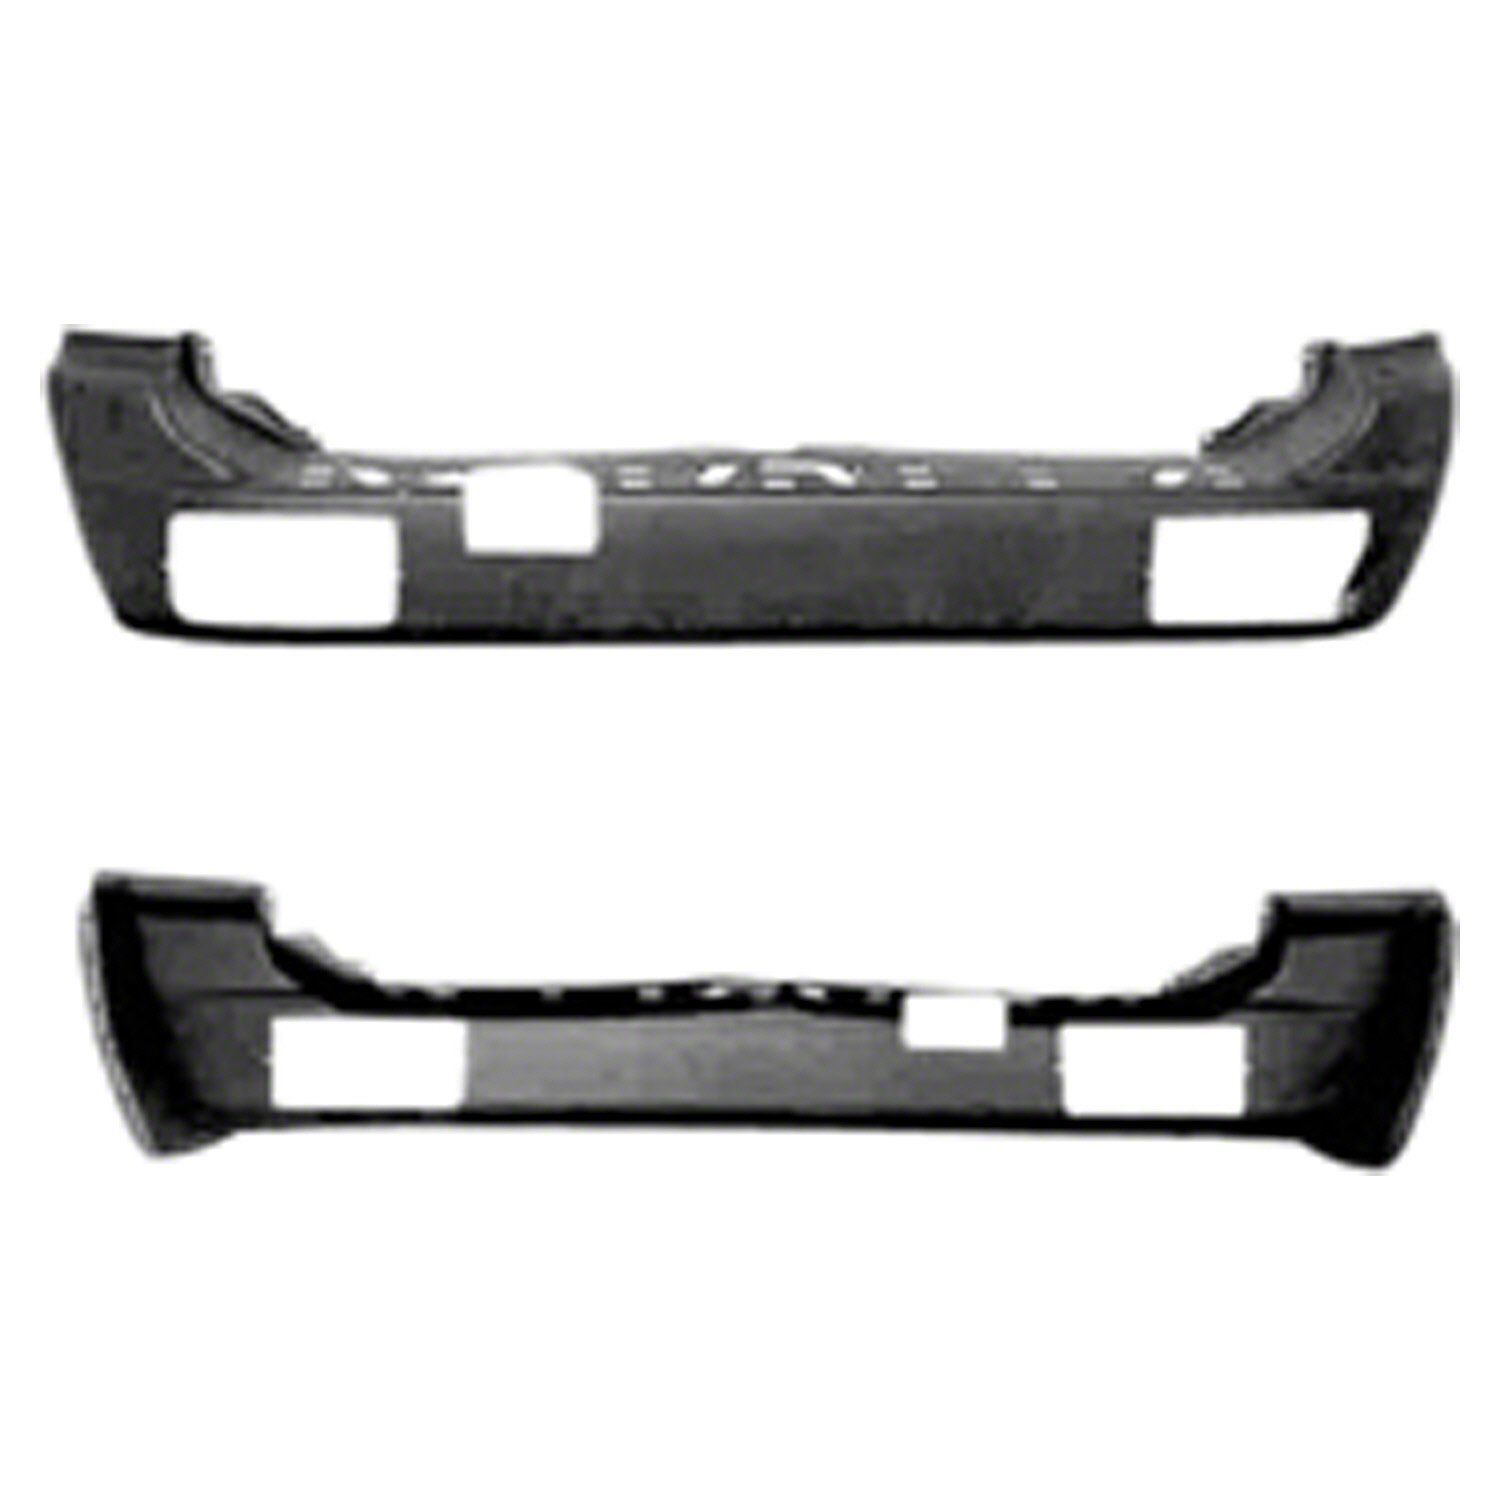 Crash Parts Plus Crash Parts Plus MI1100252 Rear Bumper Cover for 97-99 Mitsubishi Montero Sport